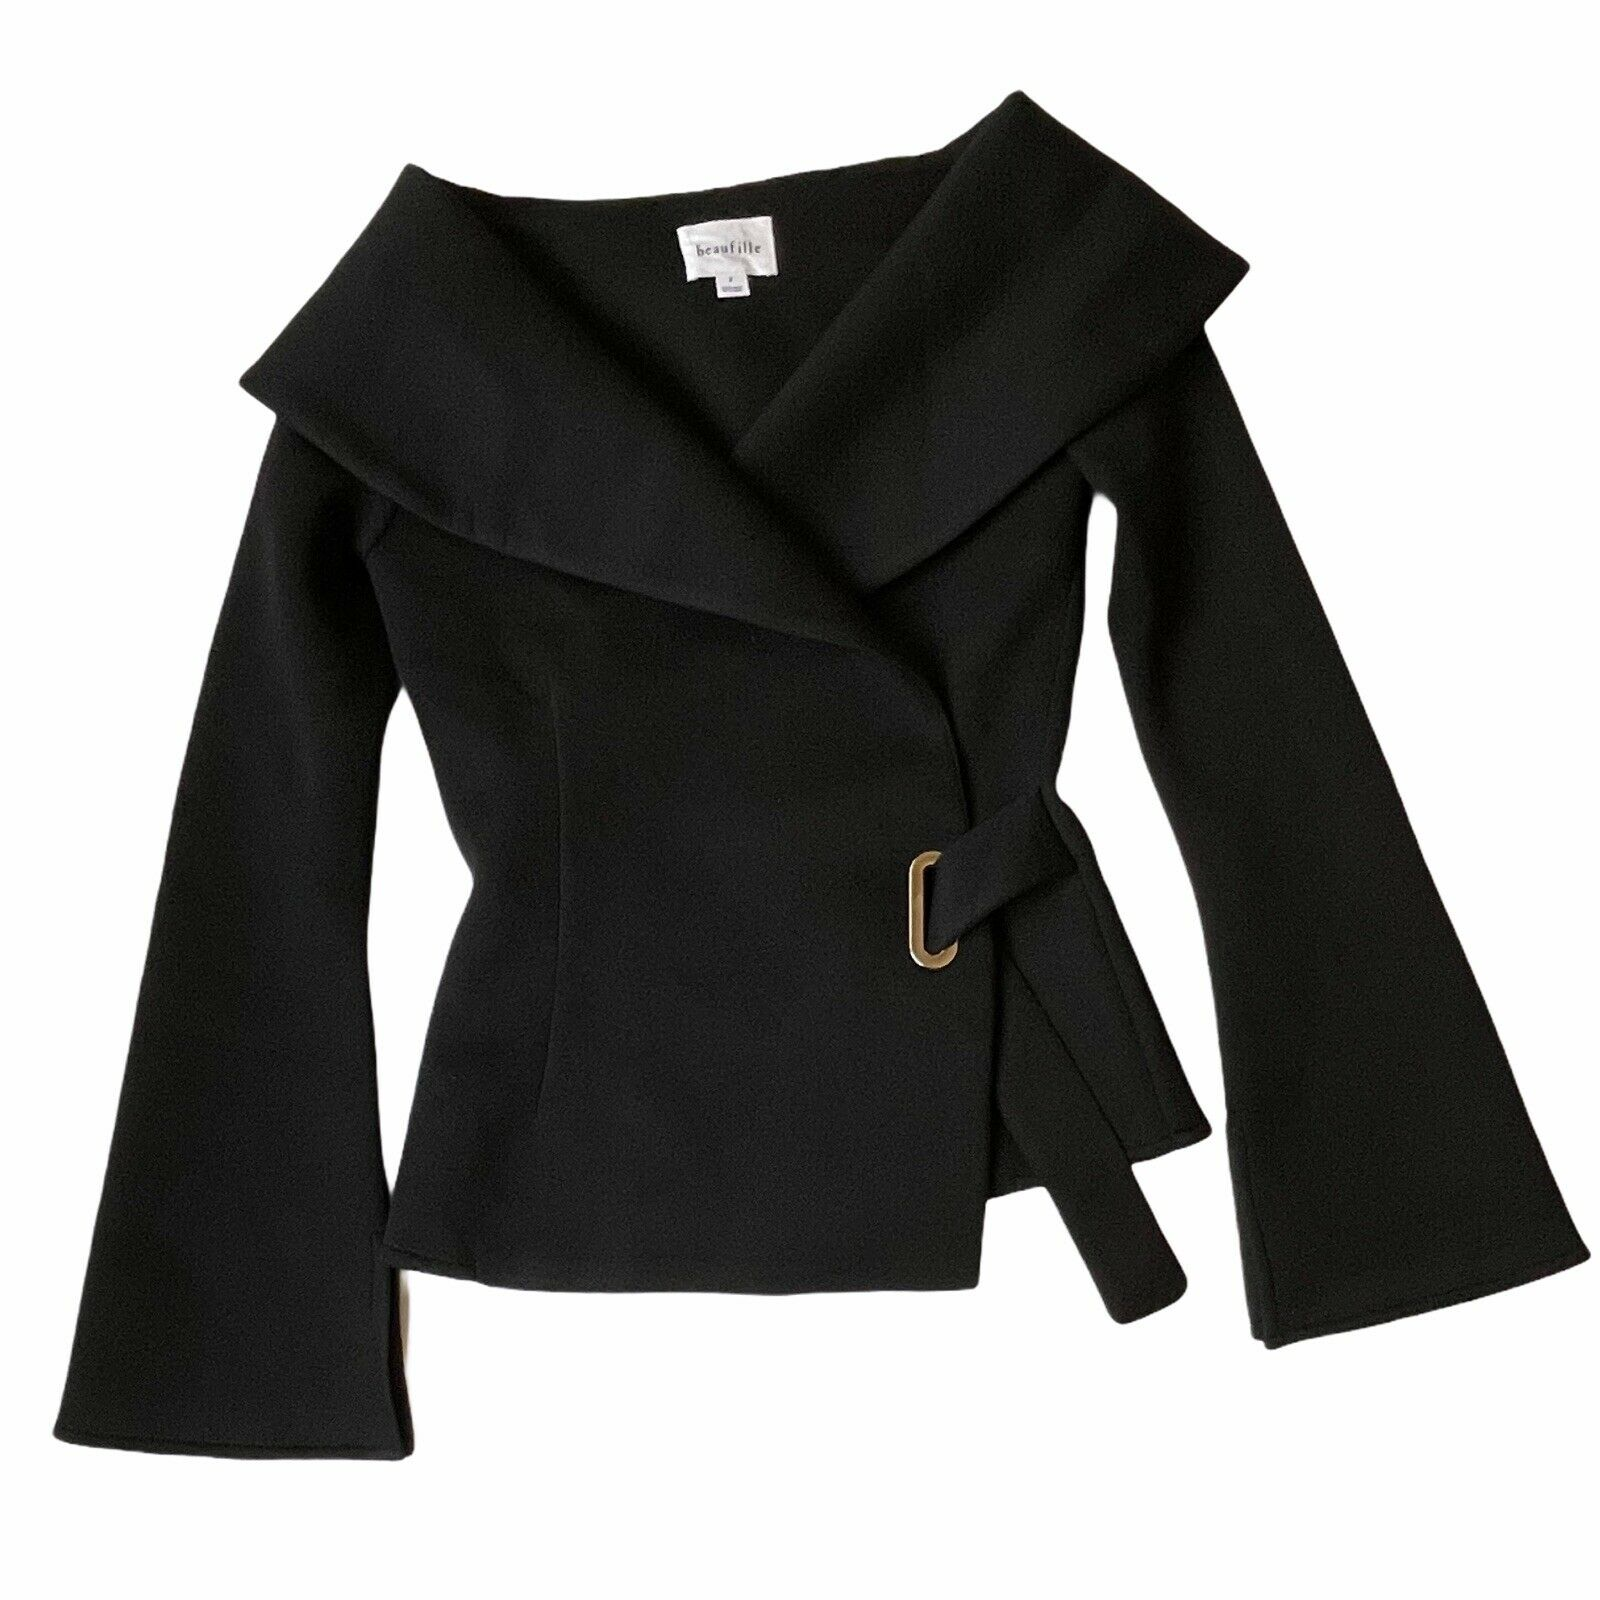 Beaufille Women's Clothing Size 2 Black Large Col… - image 3